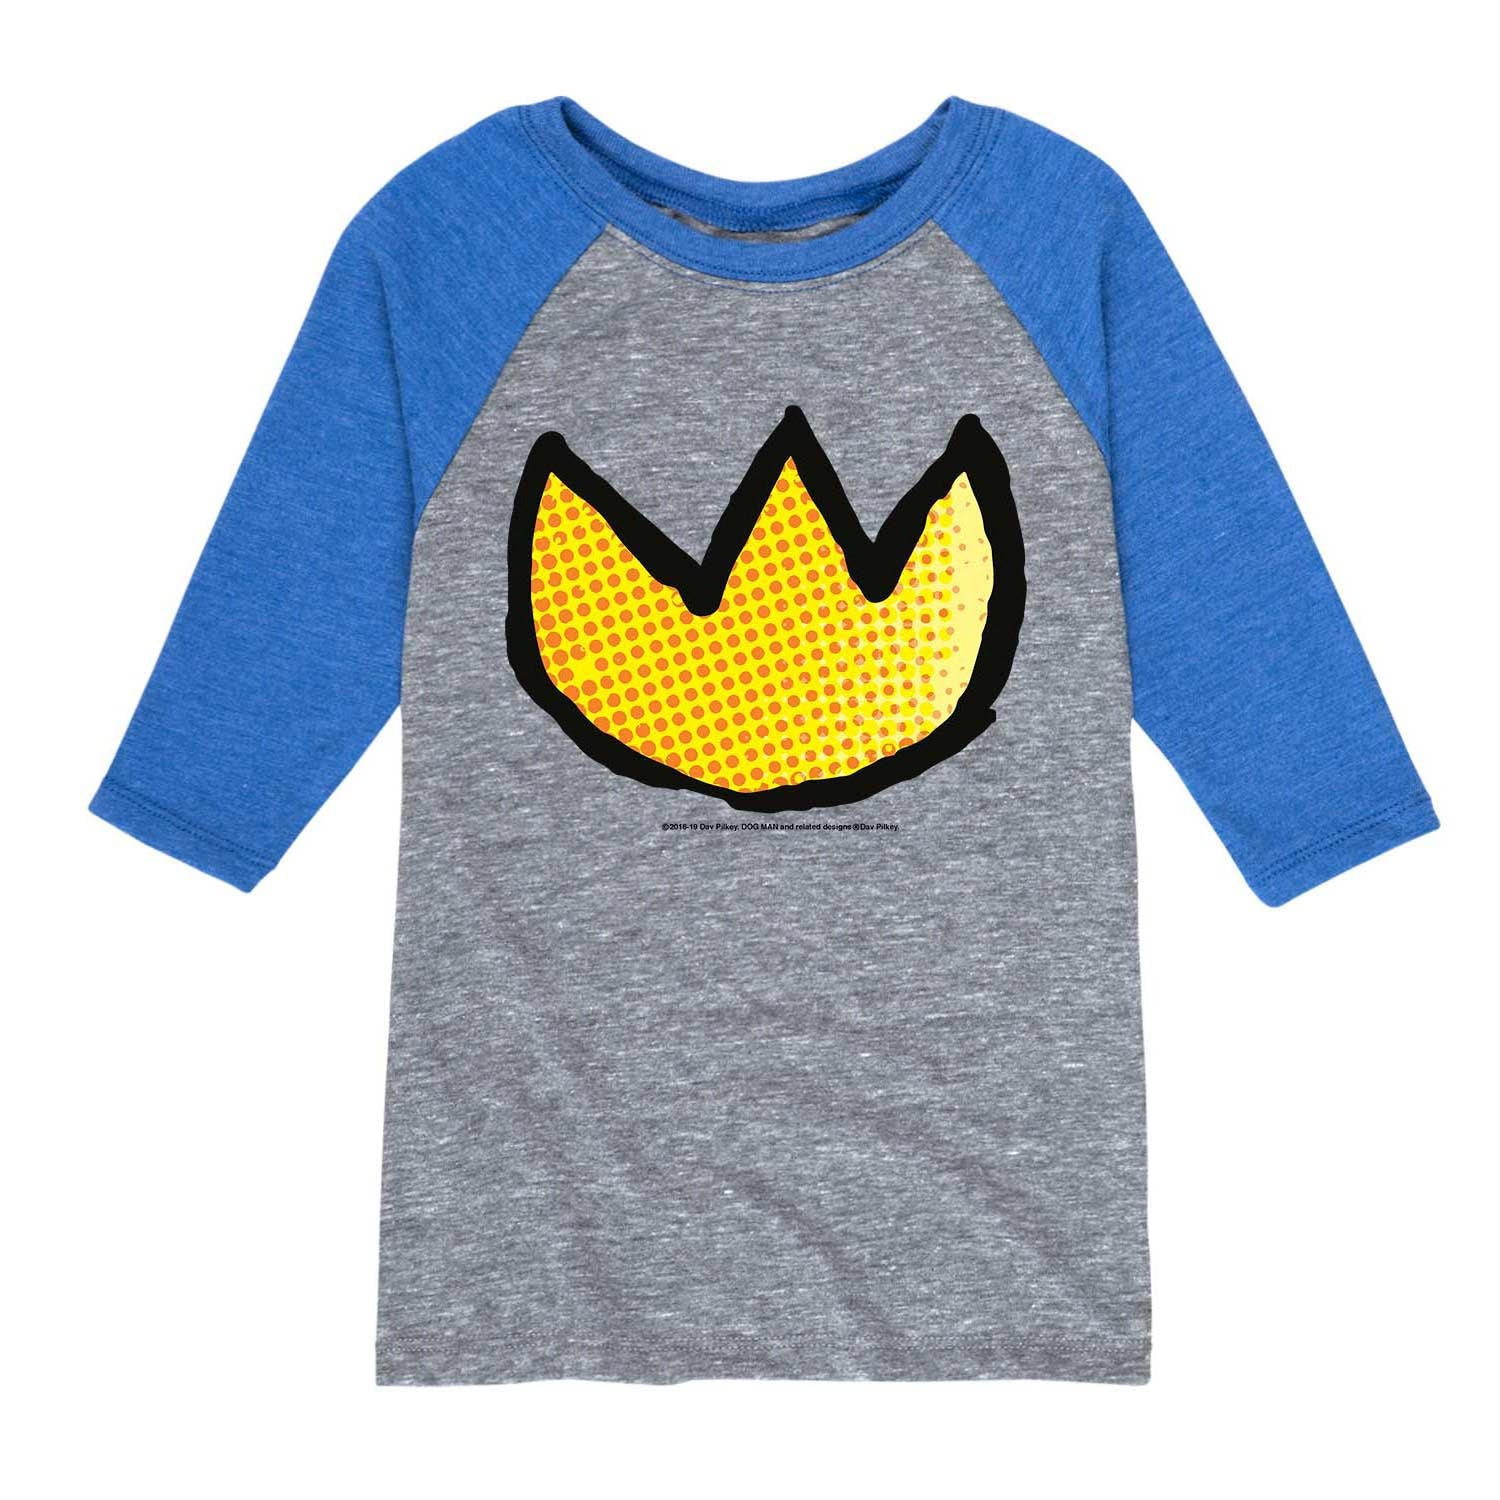 Dogman_Medallion_Dot Texture - Youth & Toddler Raglan